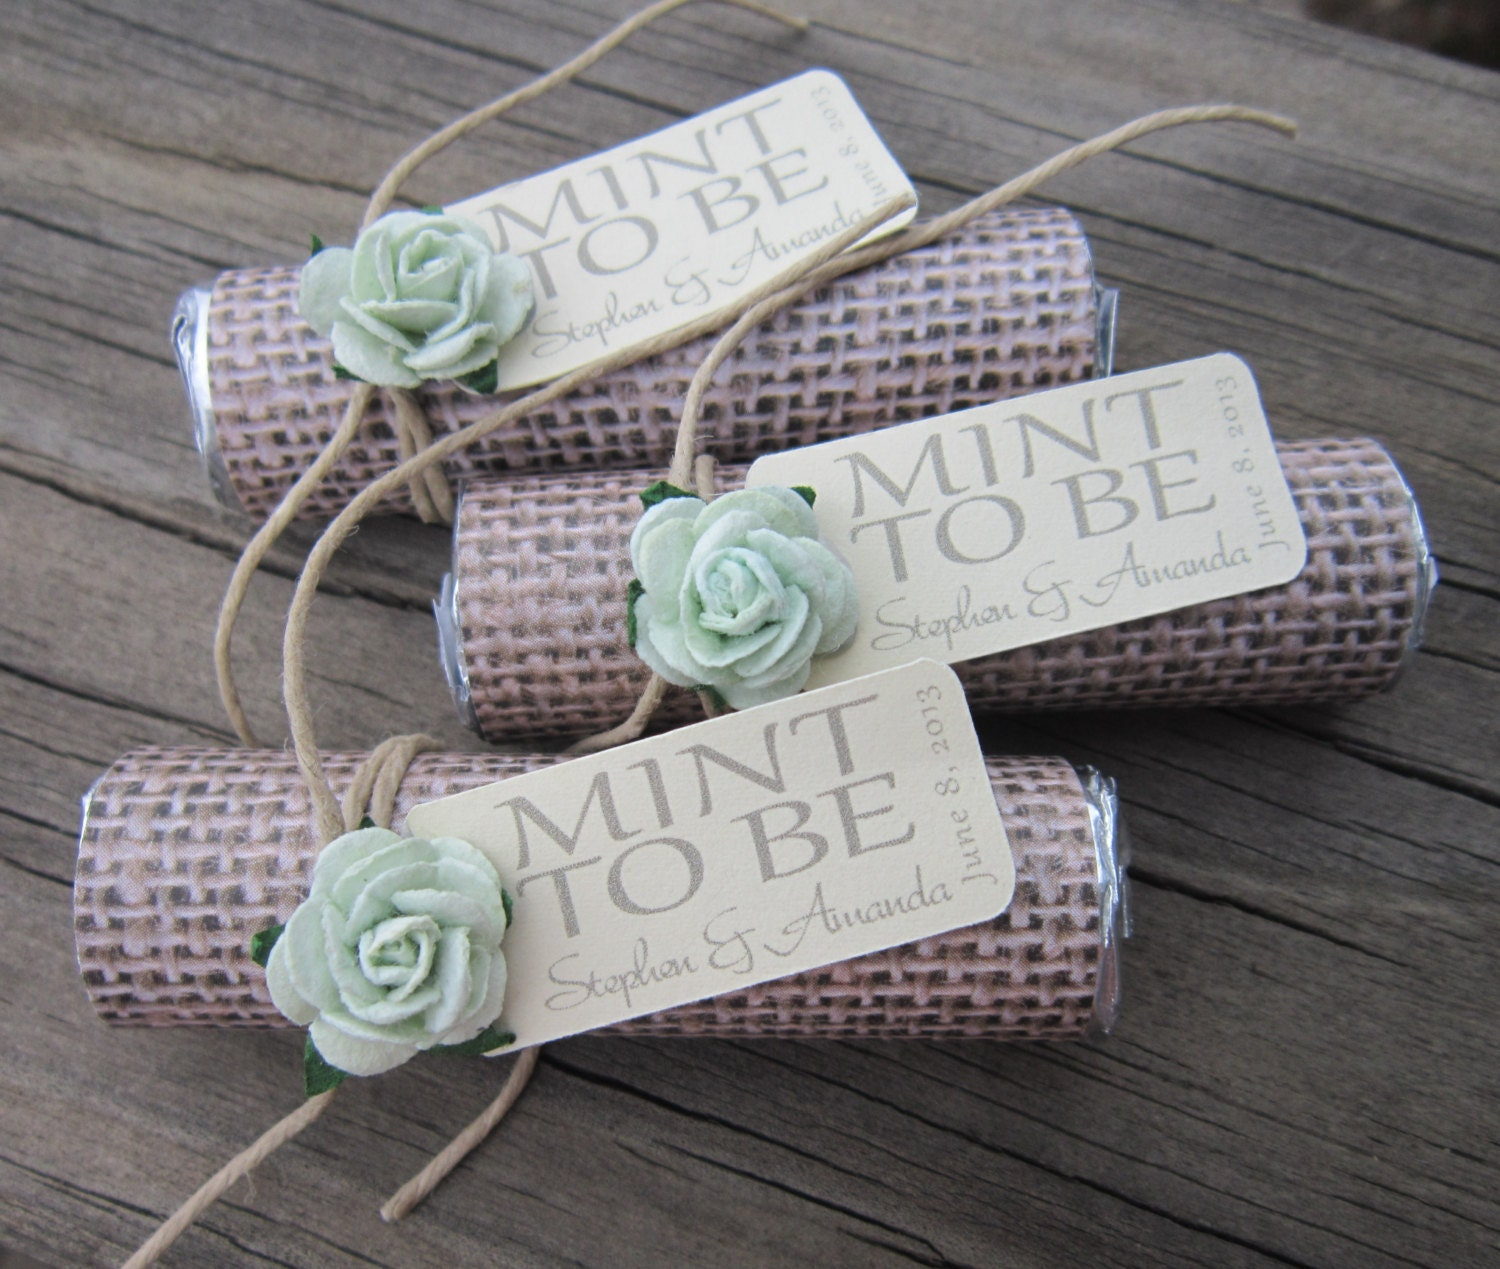 Wedding Gifts For Bridal Party: Mint Wedding Favors Set Of 24 Mint Rolls Mint To